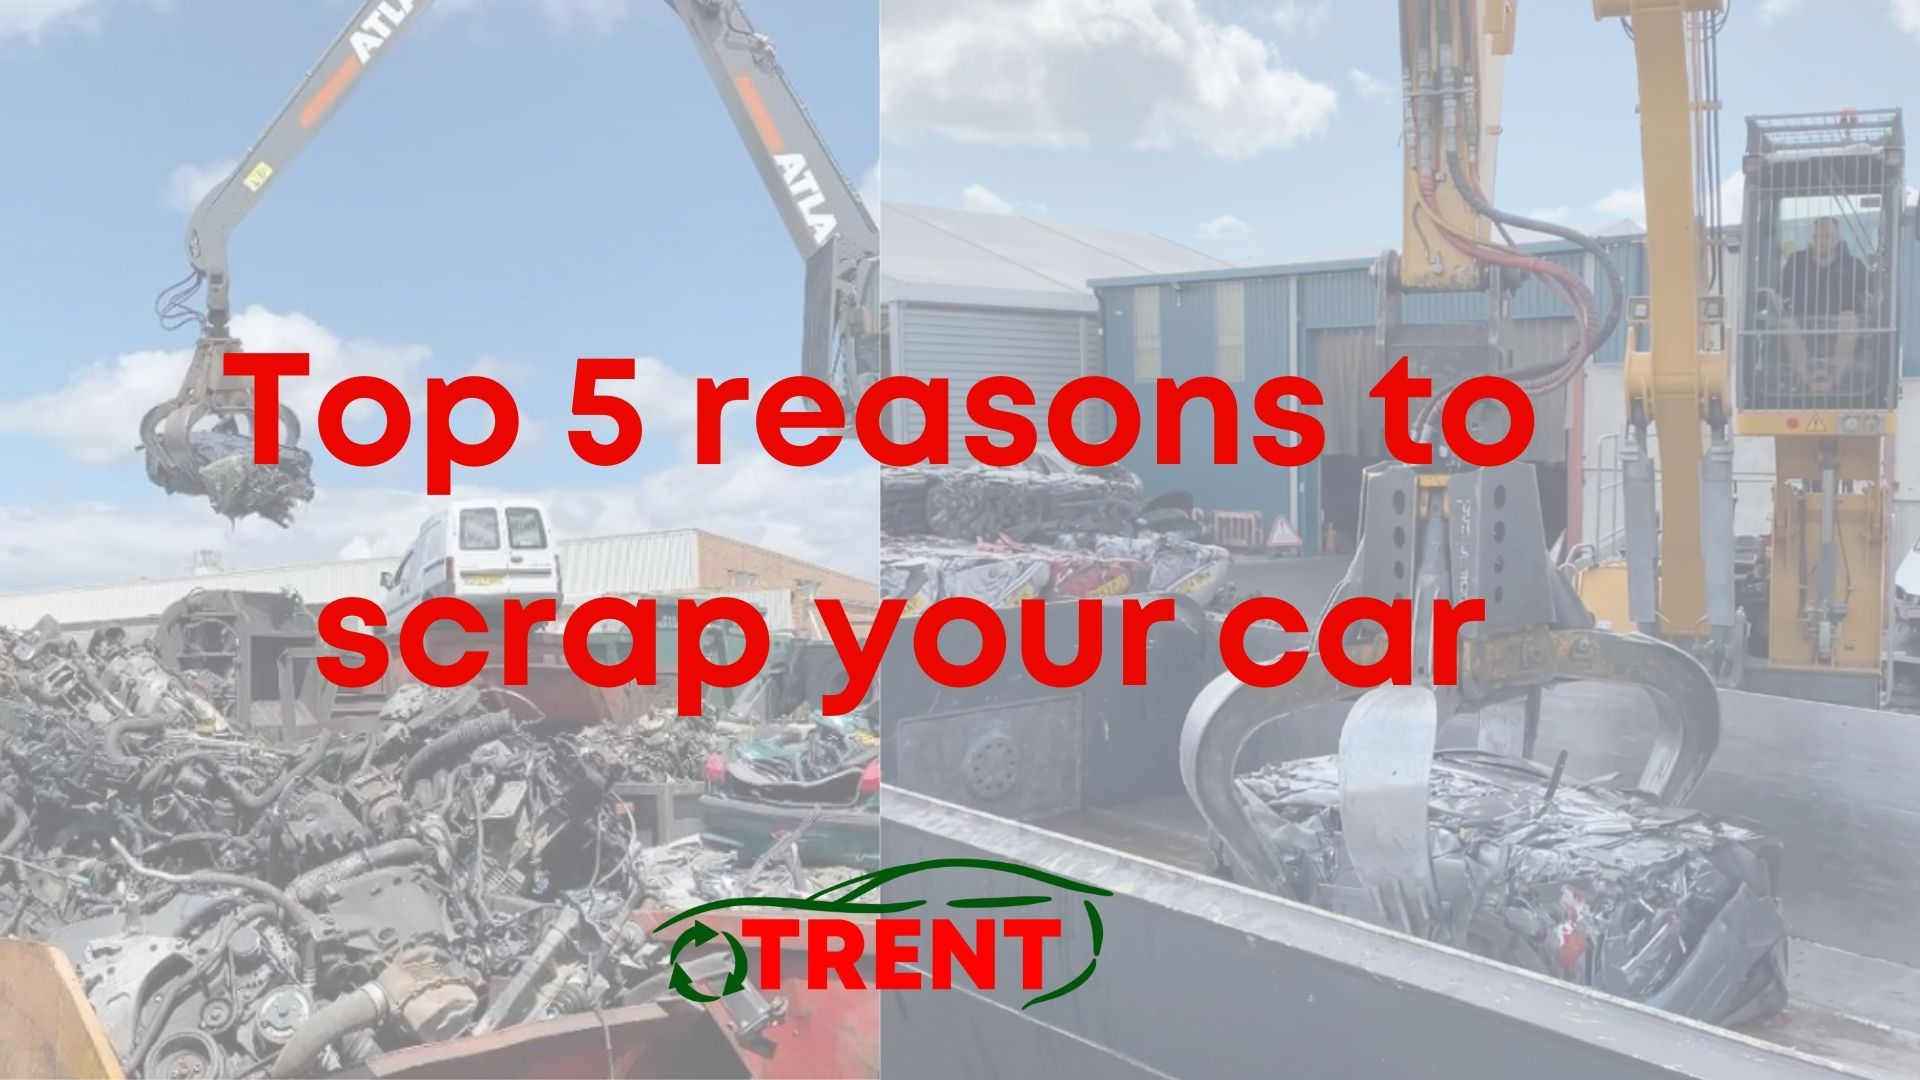 Top 5 reasons to scrap your car today!